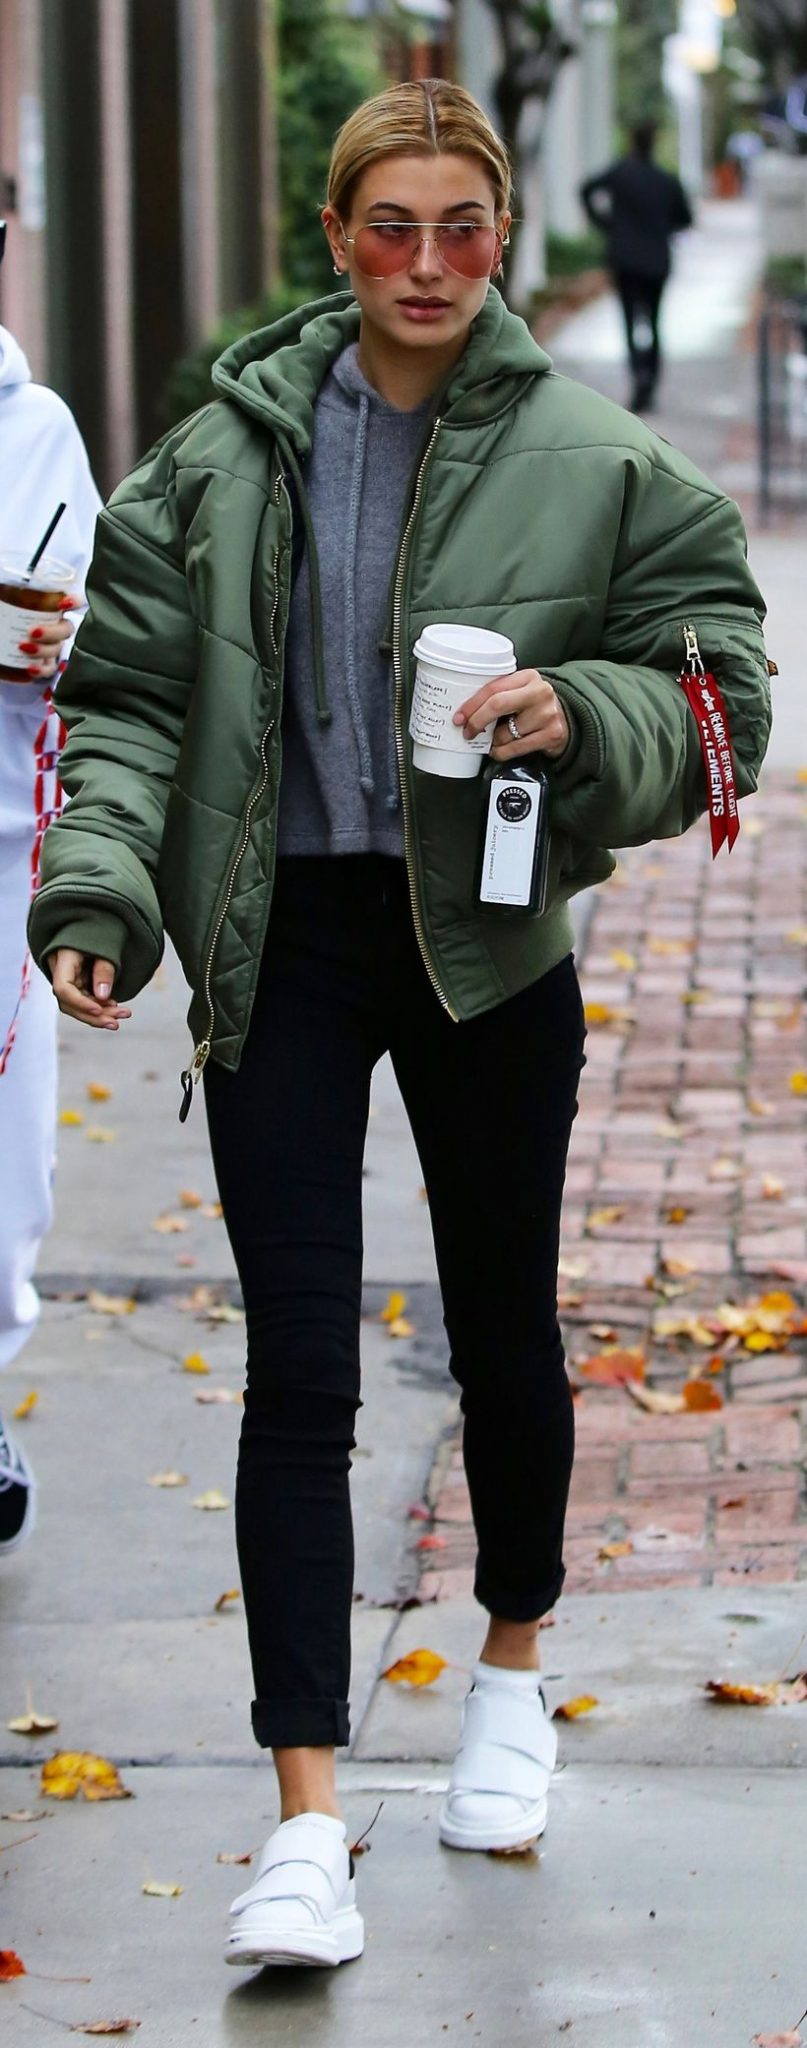 Cool casual street style outfit ideas 2017 25